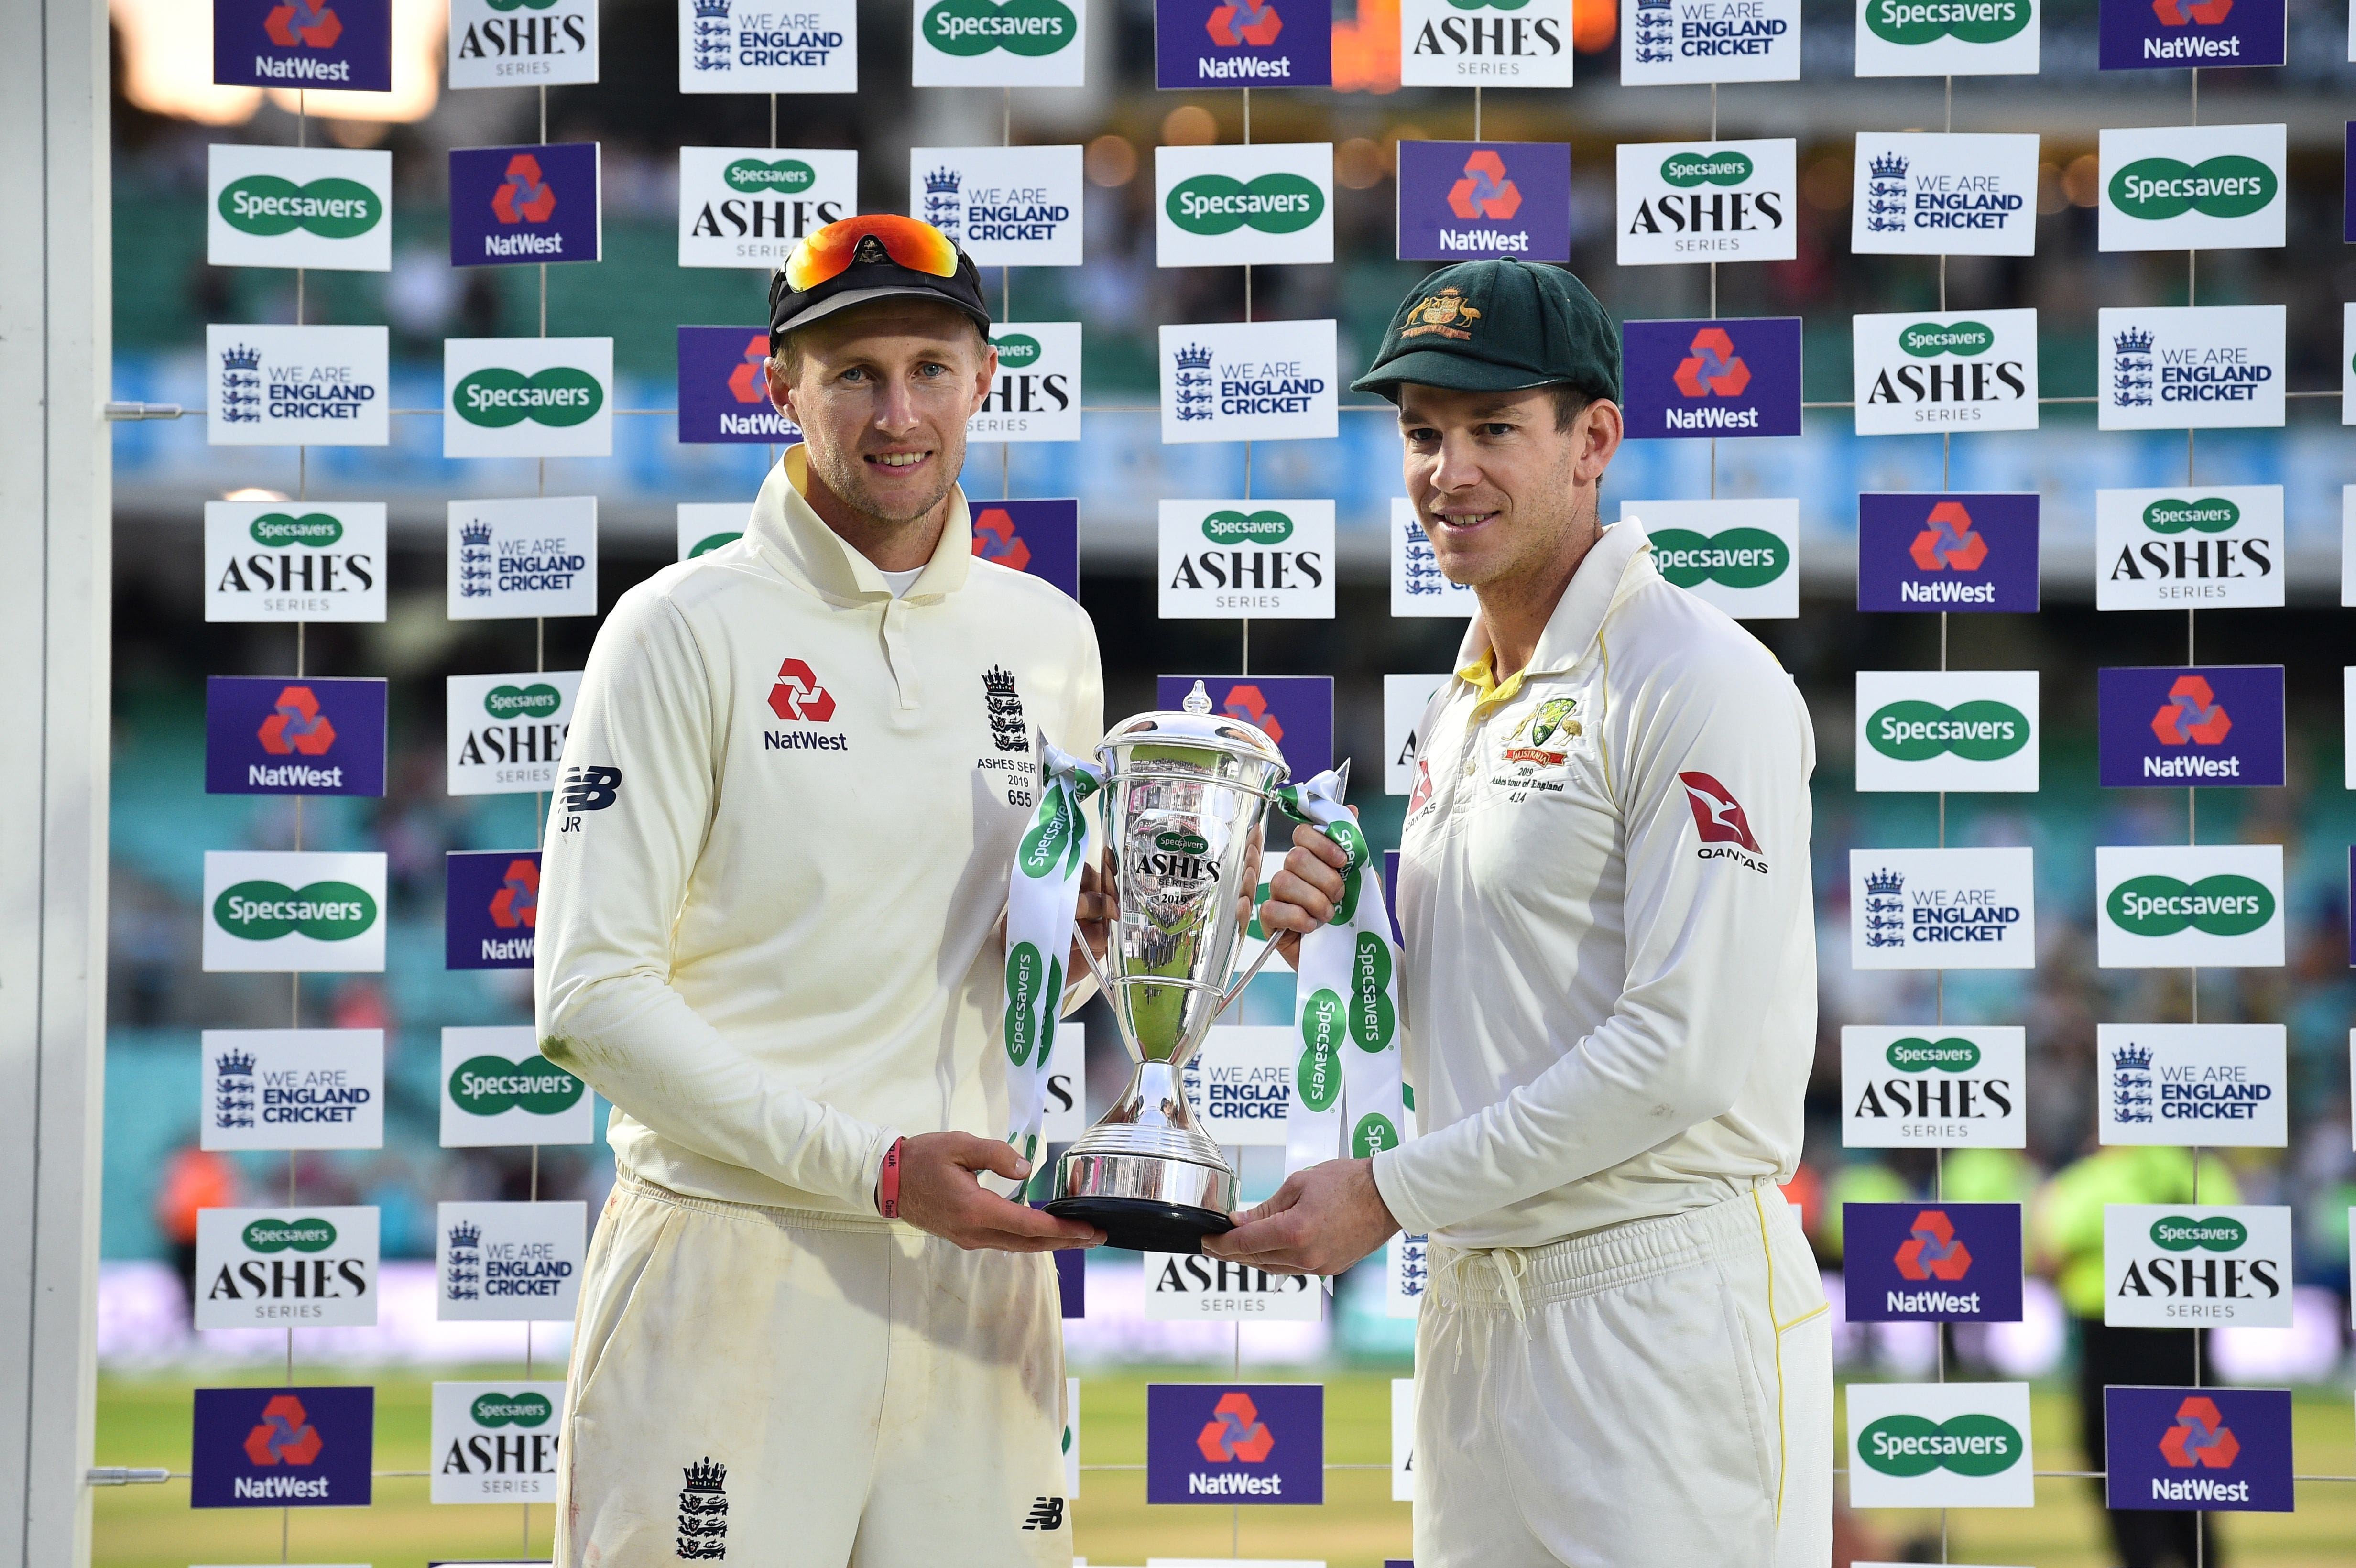 Ashes latest news, scores, fixtures, results and updates from England vs Australia 2019. Ashes 2019 schedule, Ashes 2019 squads, England's Ashes 2019 squad, Australia's Ashes 2019 squad.